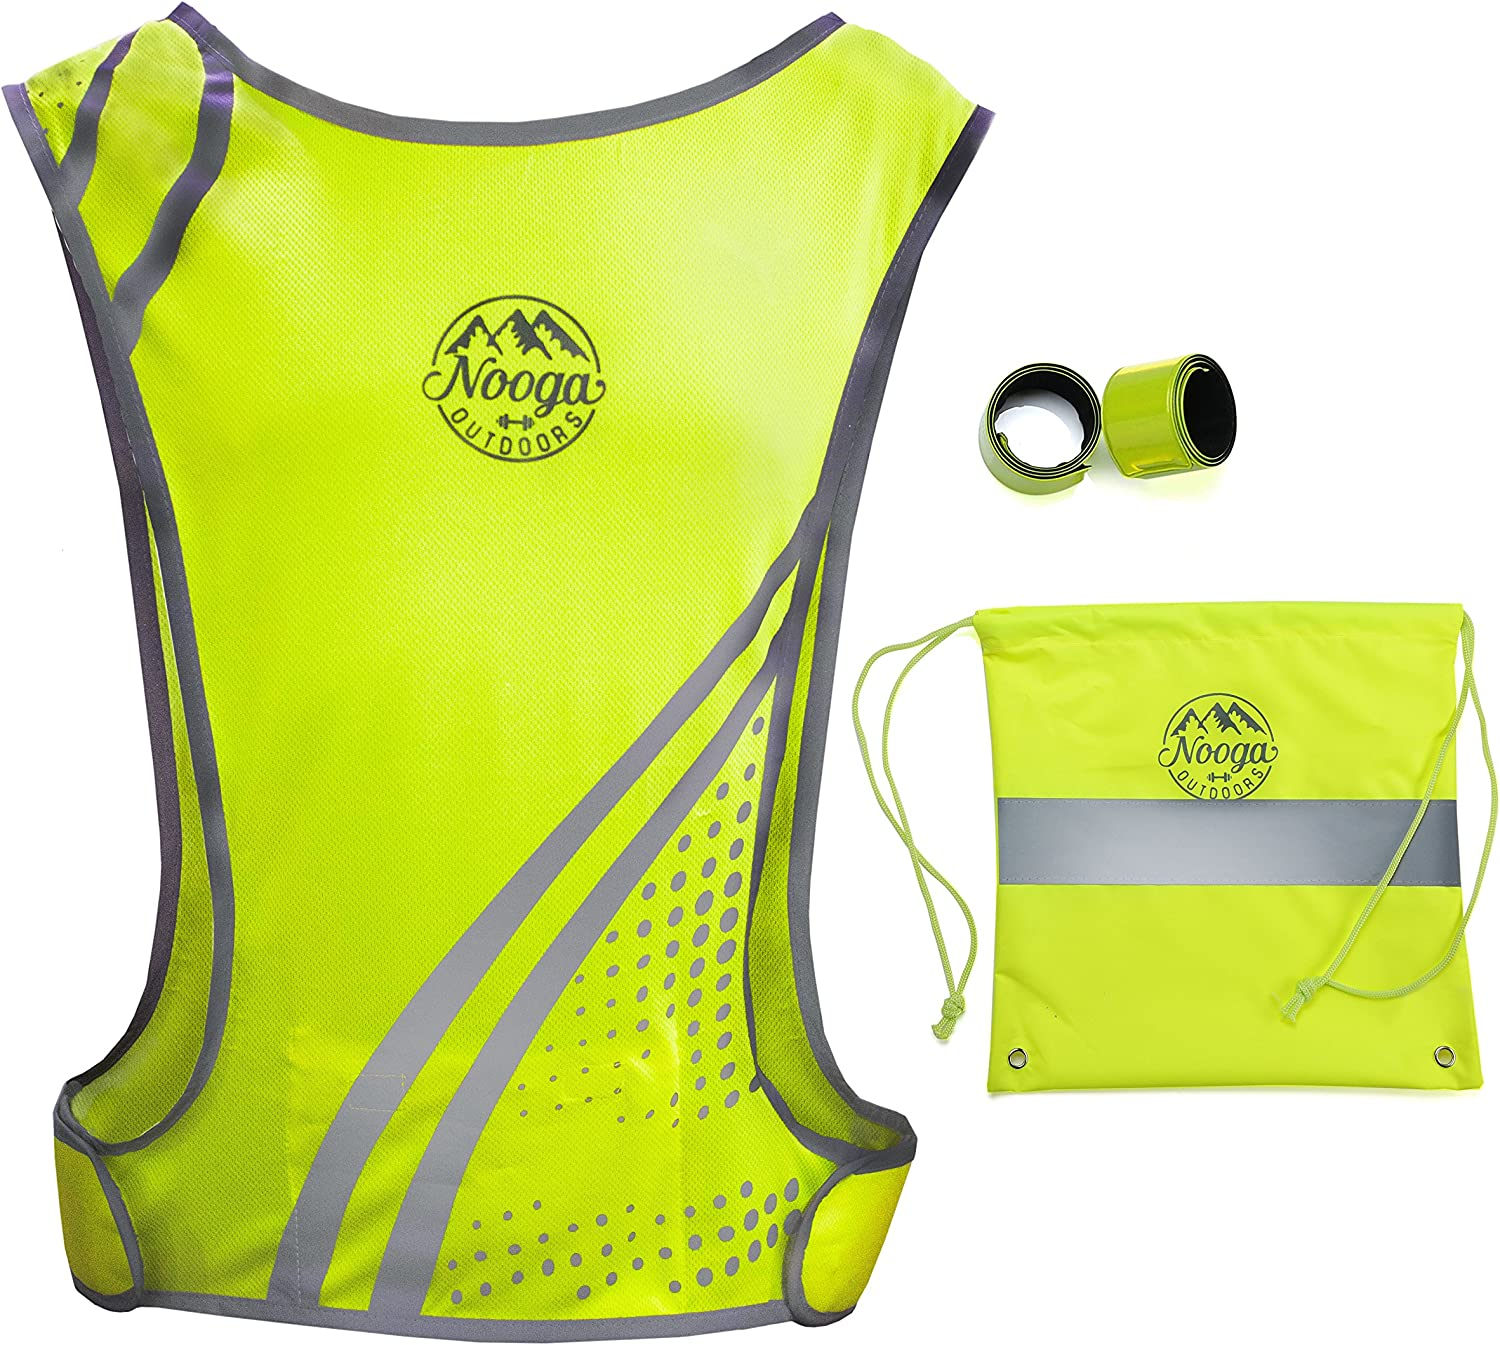 Reflective Running Vest with Pocket for Cycling Jogging Biking Hiking Dog Walking Motorcycle - High Visibility Outdoors Safety Gear, 2 Hi Vis Wristbands + Bag, Lightweight Fabric